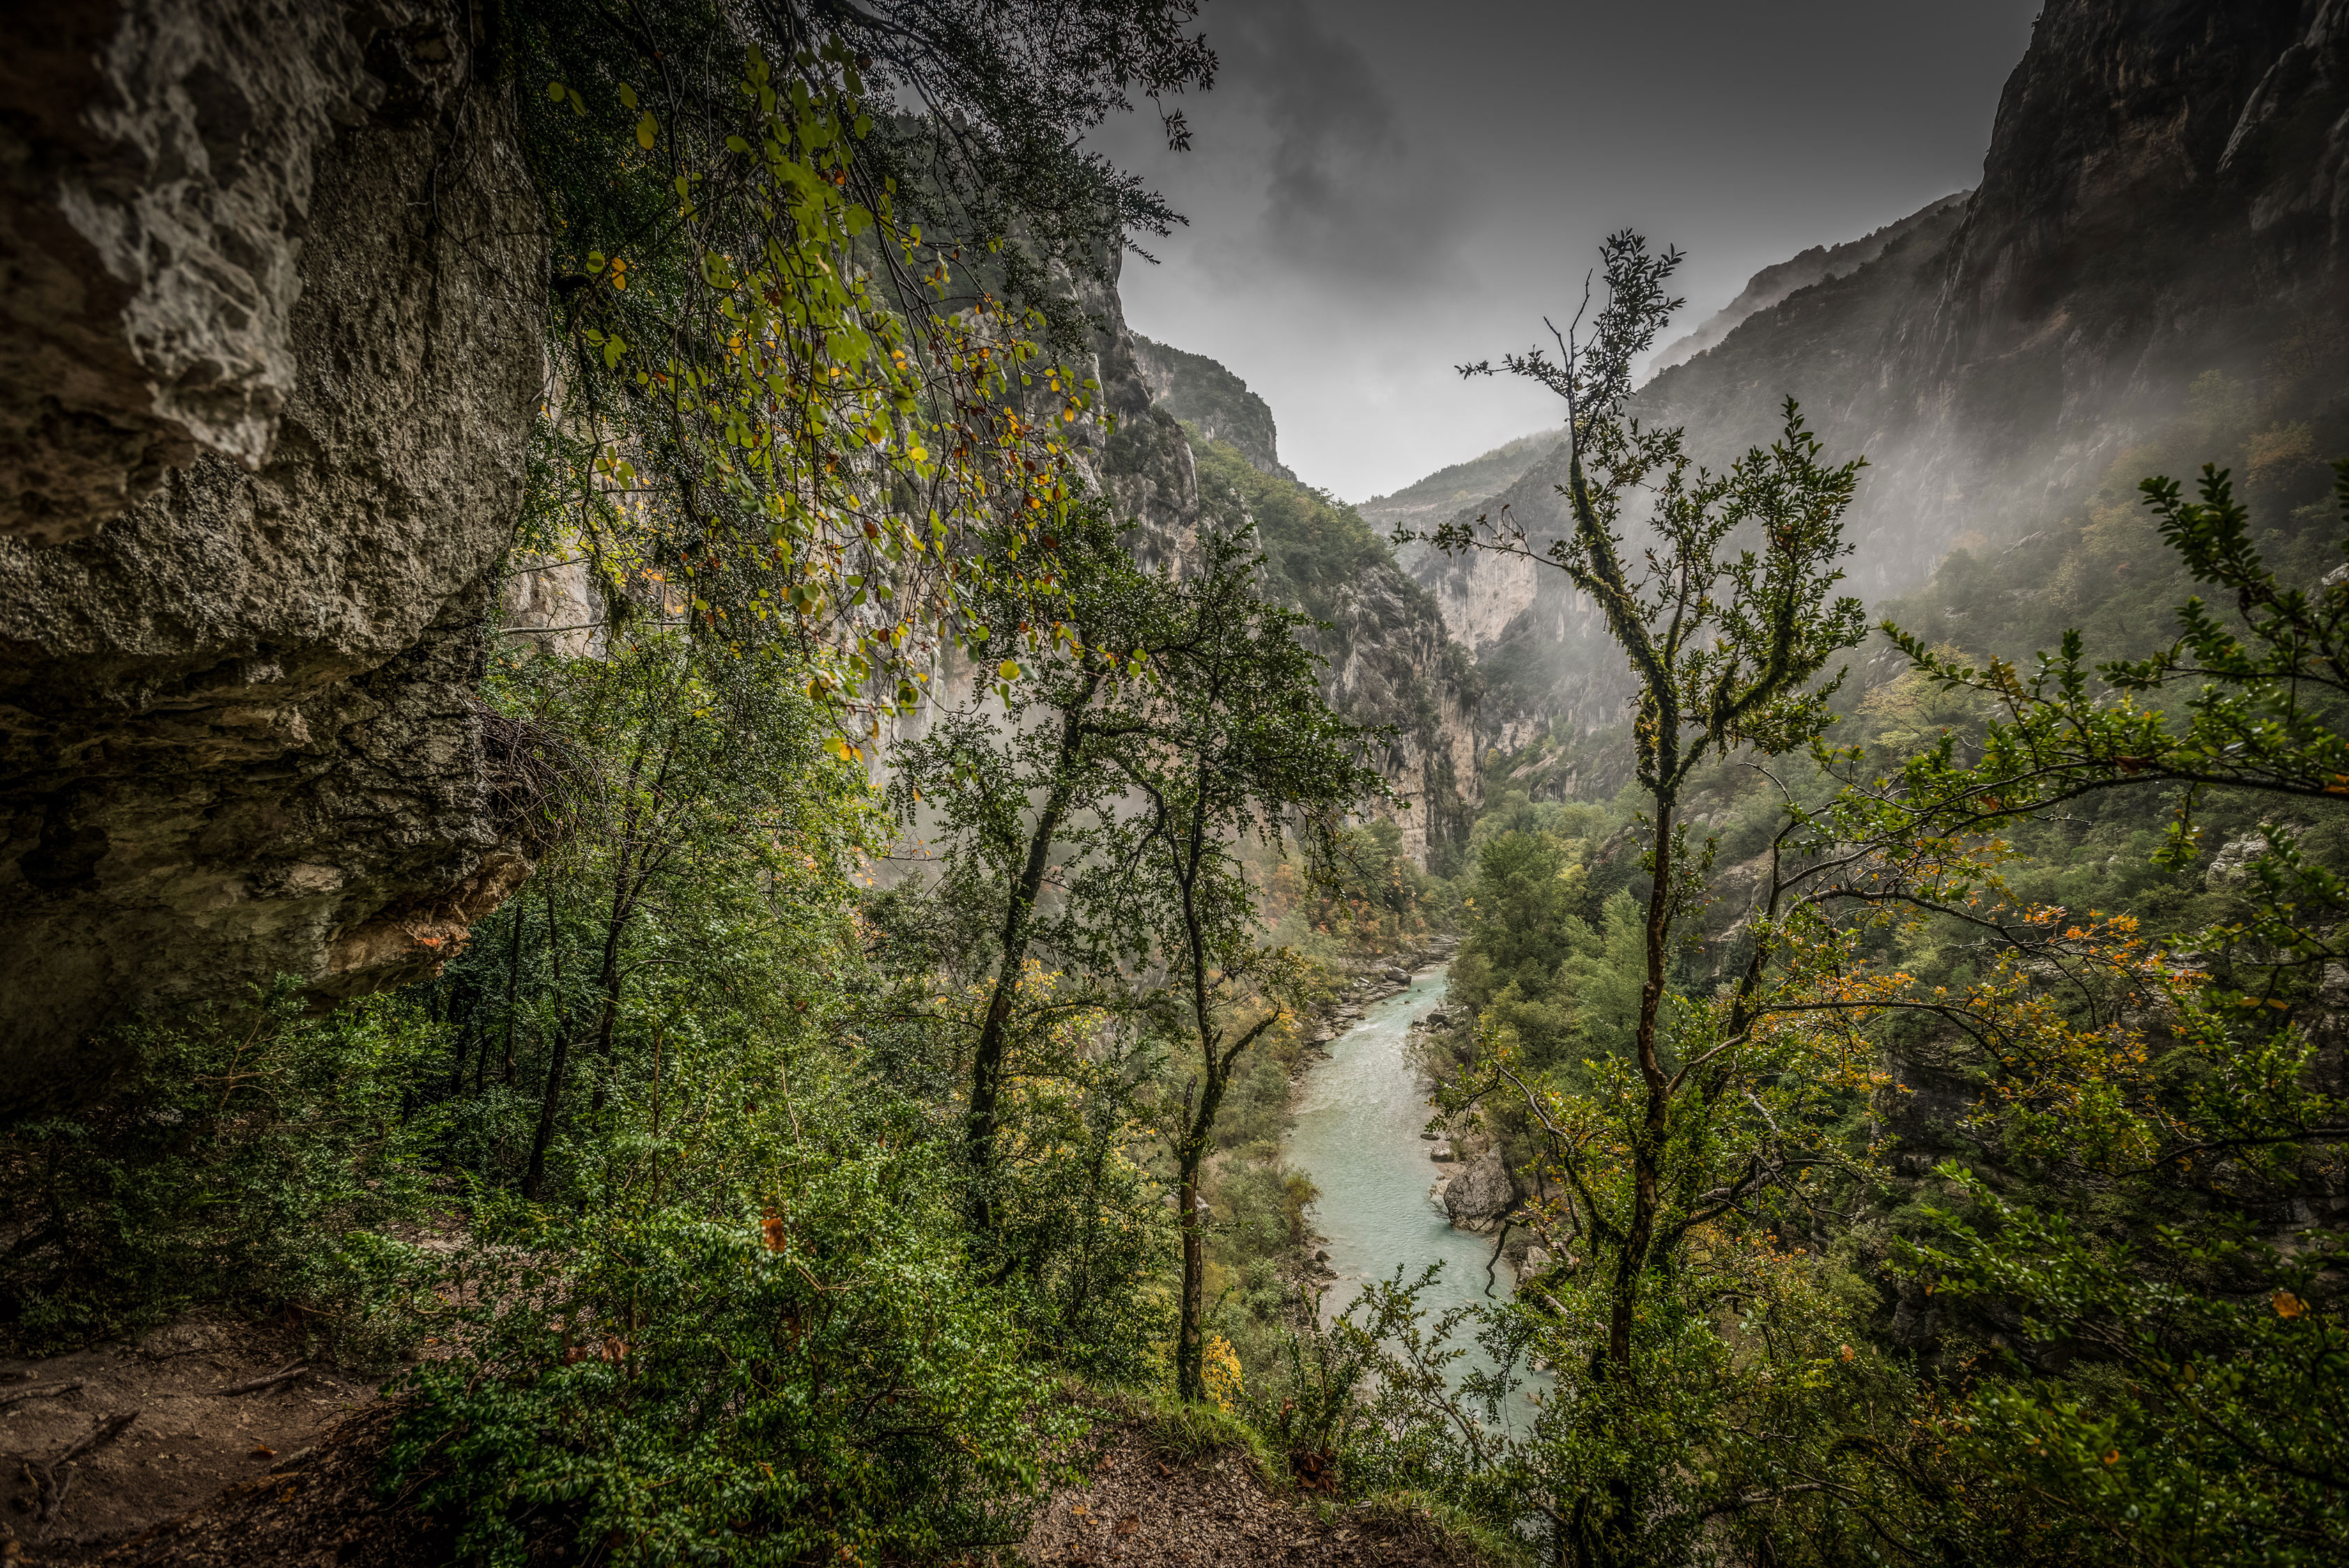 Verdon-Gorge-8040-Edit